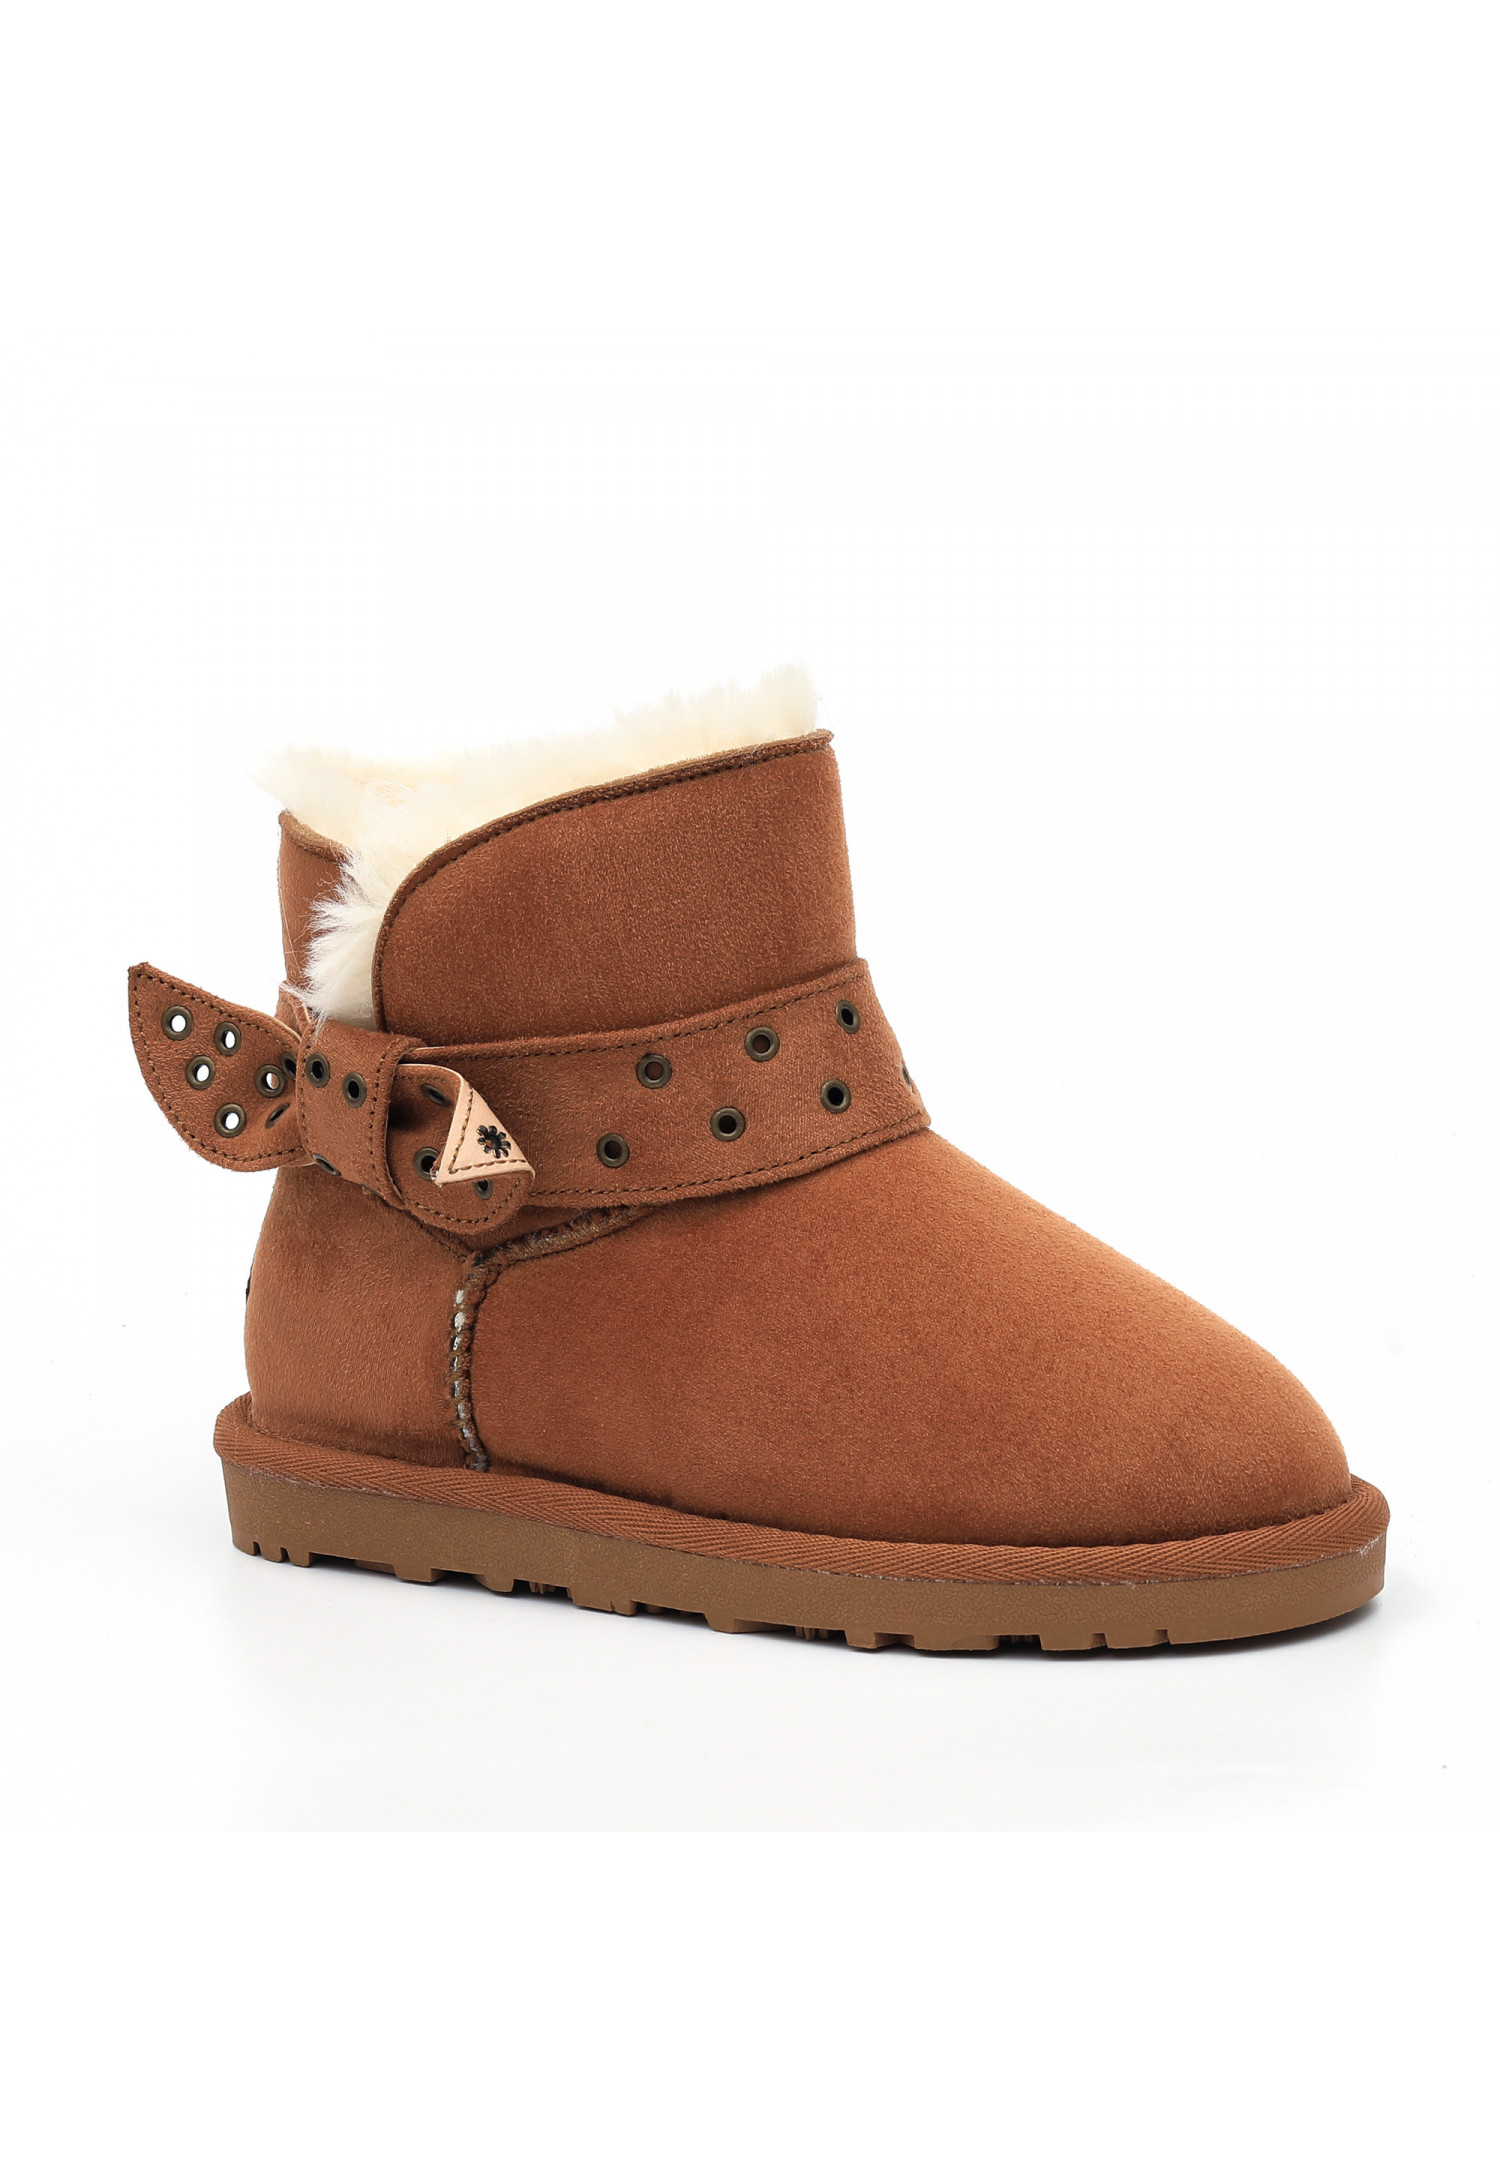 Bottines Enfants Erikata